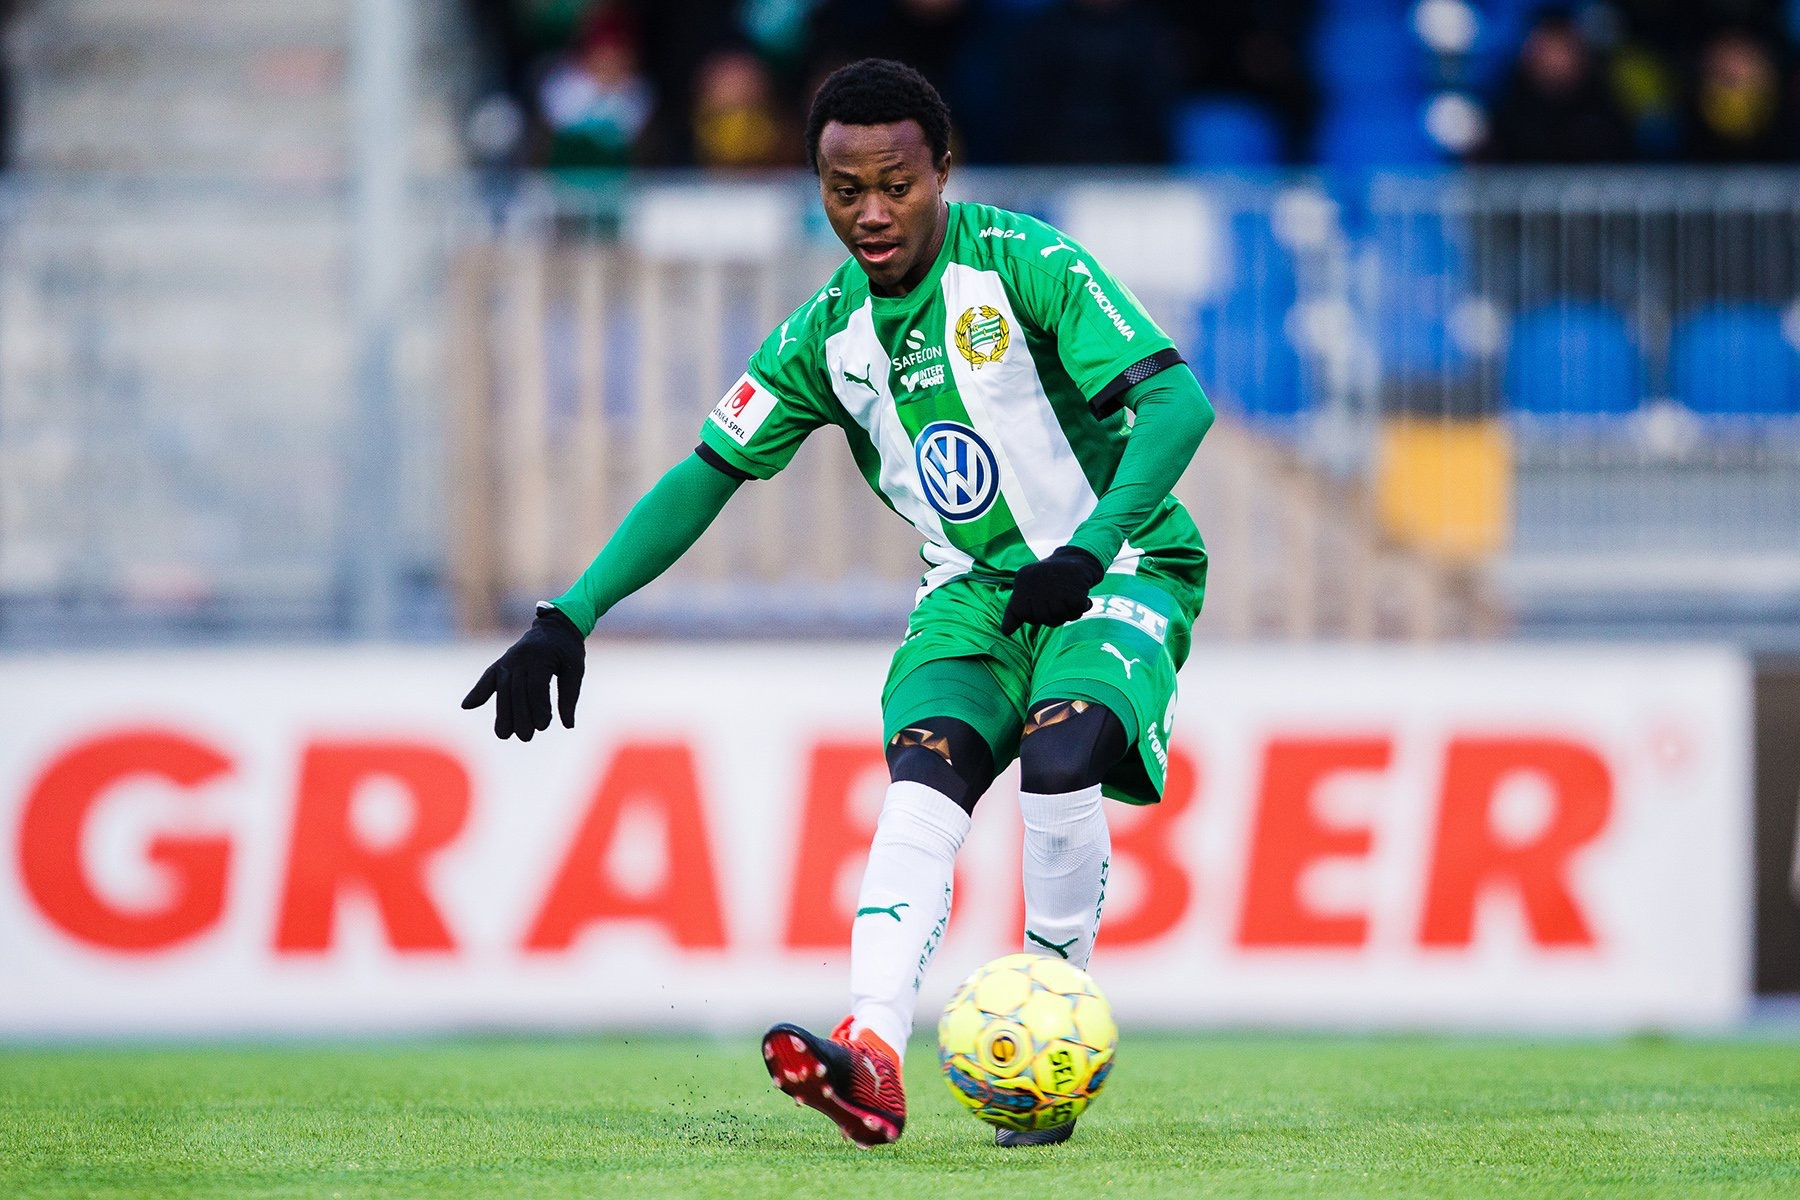 Abdul Halik features in Hammarby U19 win